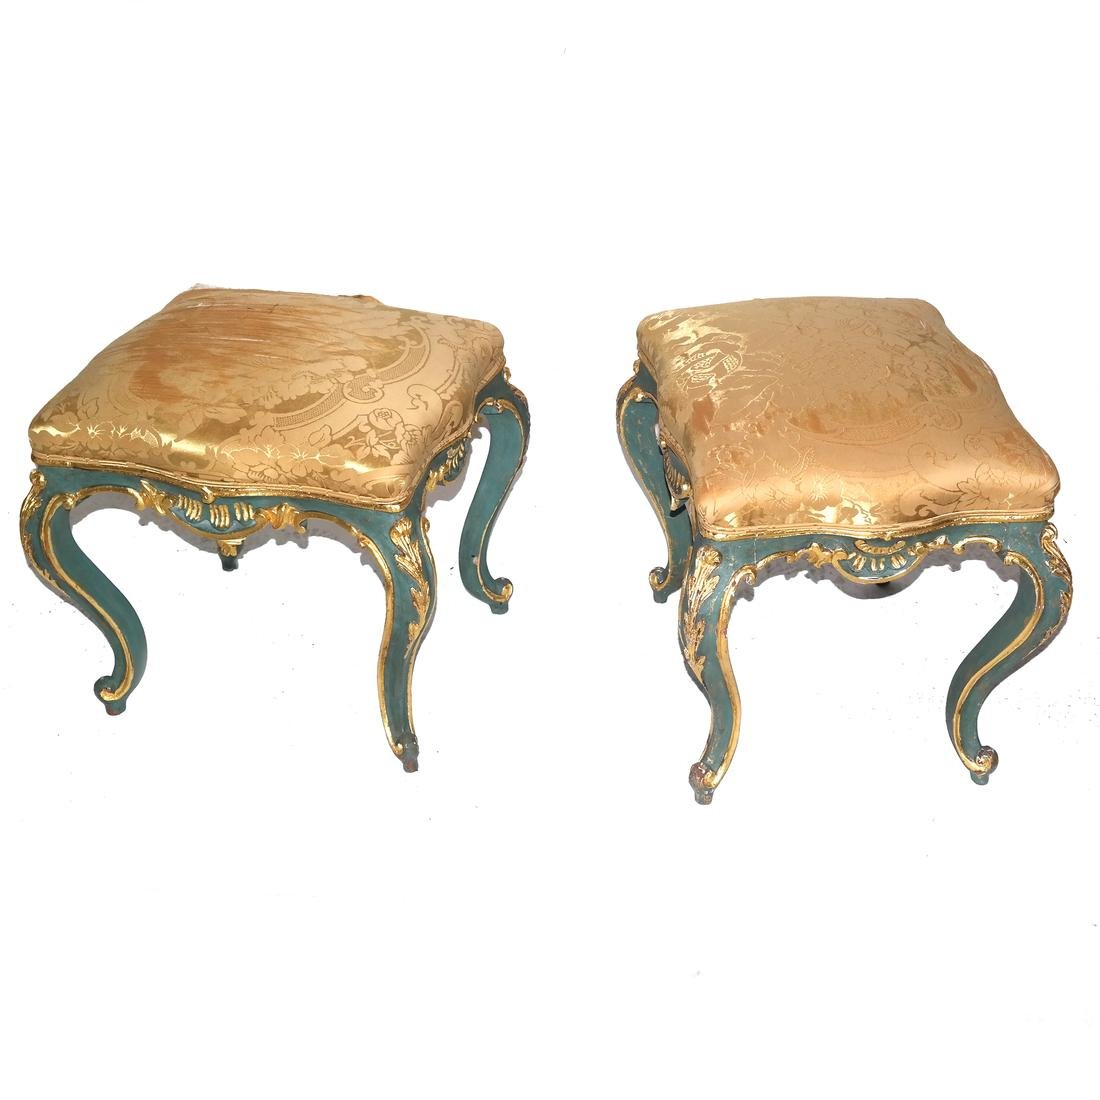 Pair of 19th C. Venetian-Style Decorated Benches